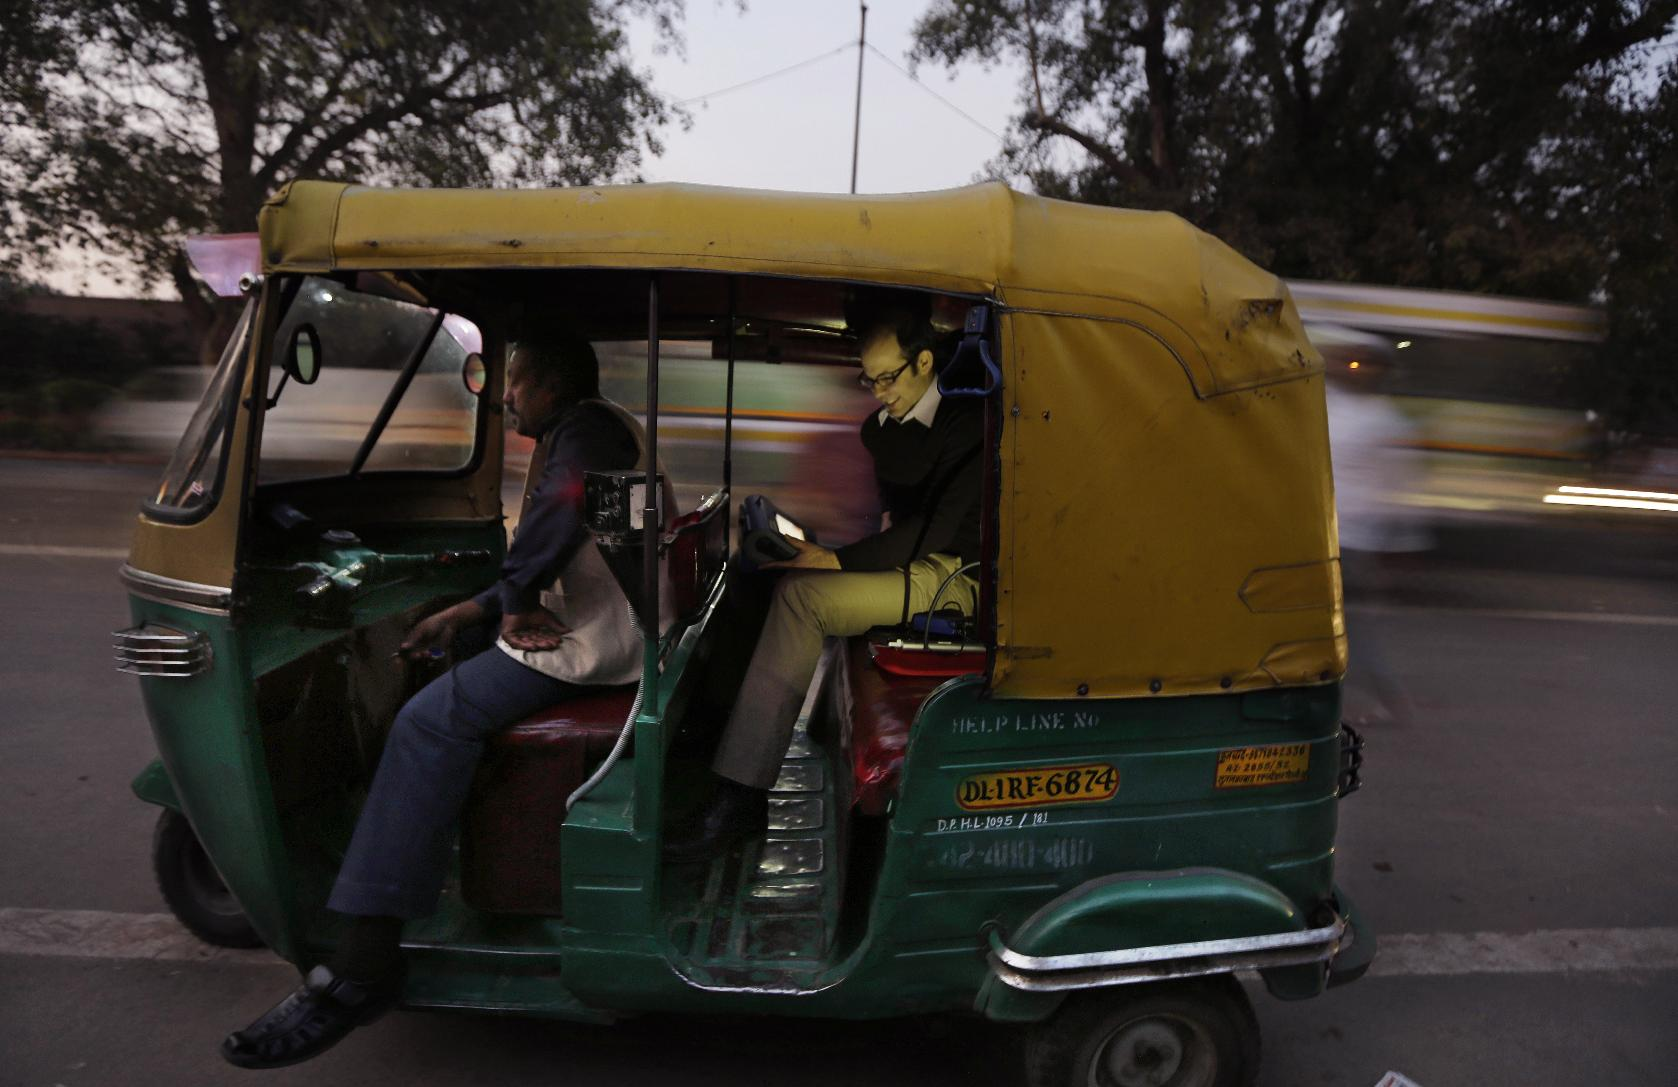 Rickshaw research reveals extreme Delhi pollution (AP Photo/Altaf Qadri)